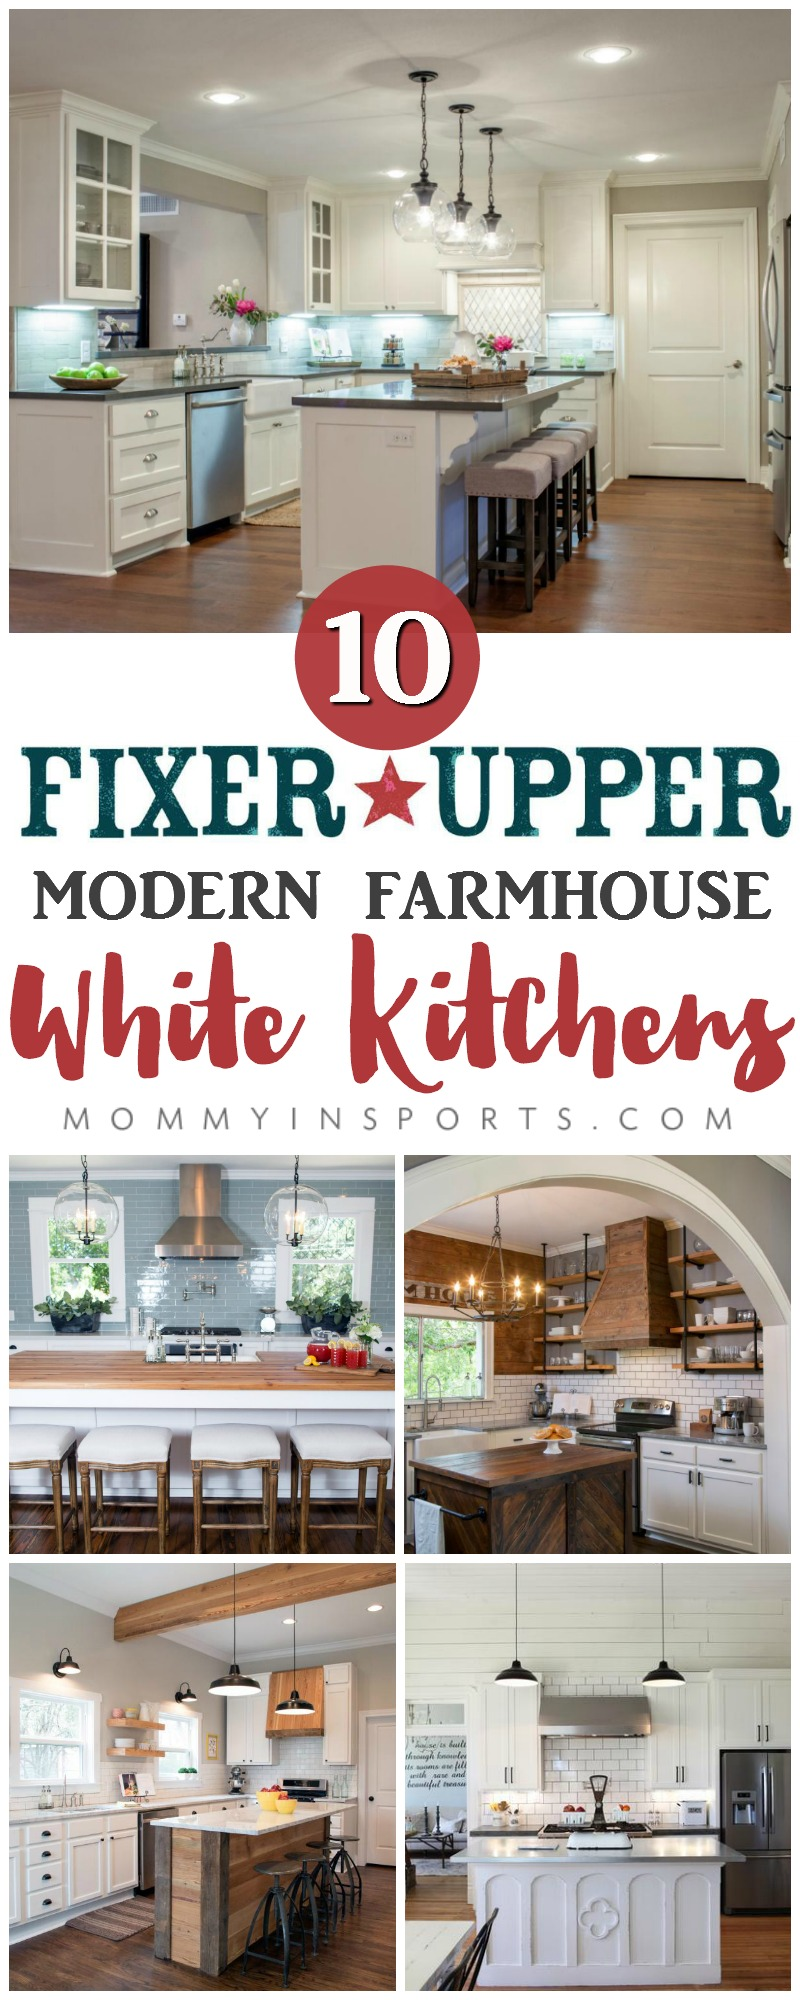 Re-designing a new kitchen and need some inspiration? Check out these 10 perfect Fixer Upper Modern Farmhouse White Kitchens! You too can have the kitchen of your dreams!